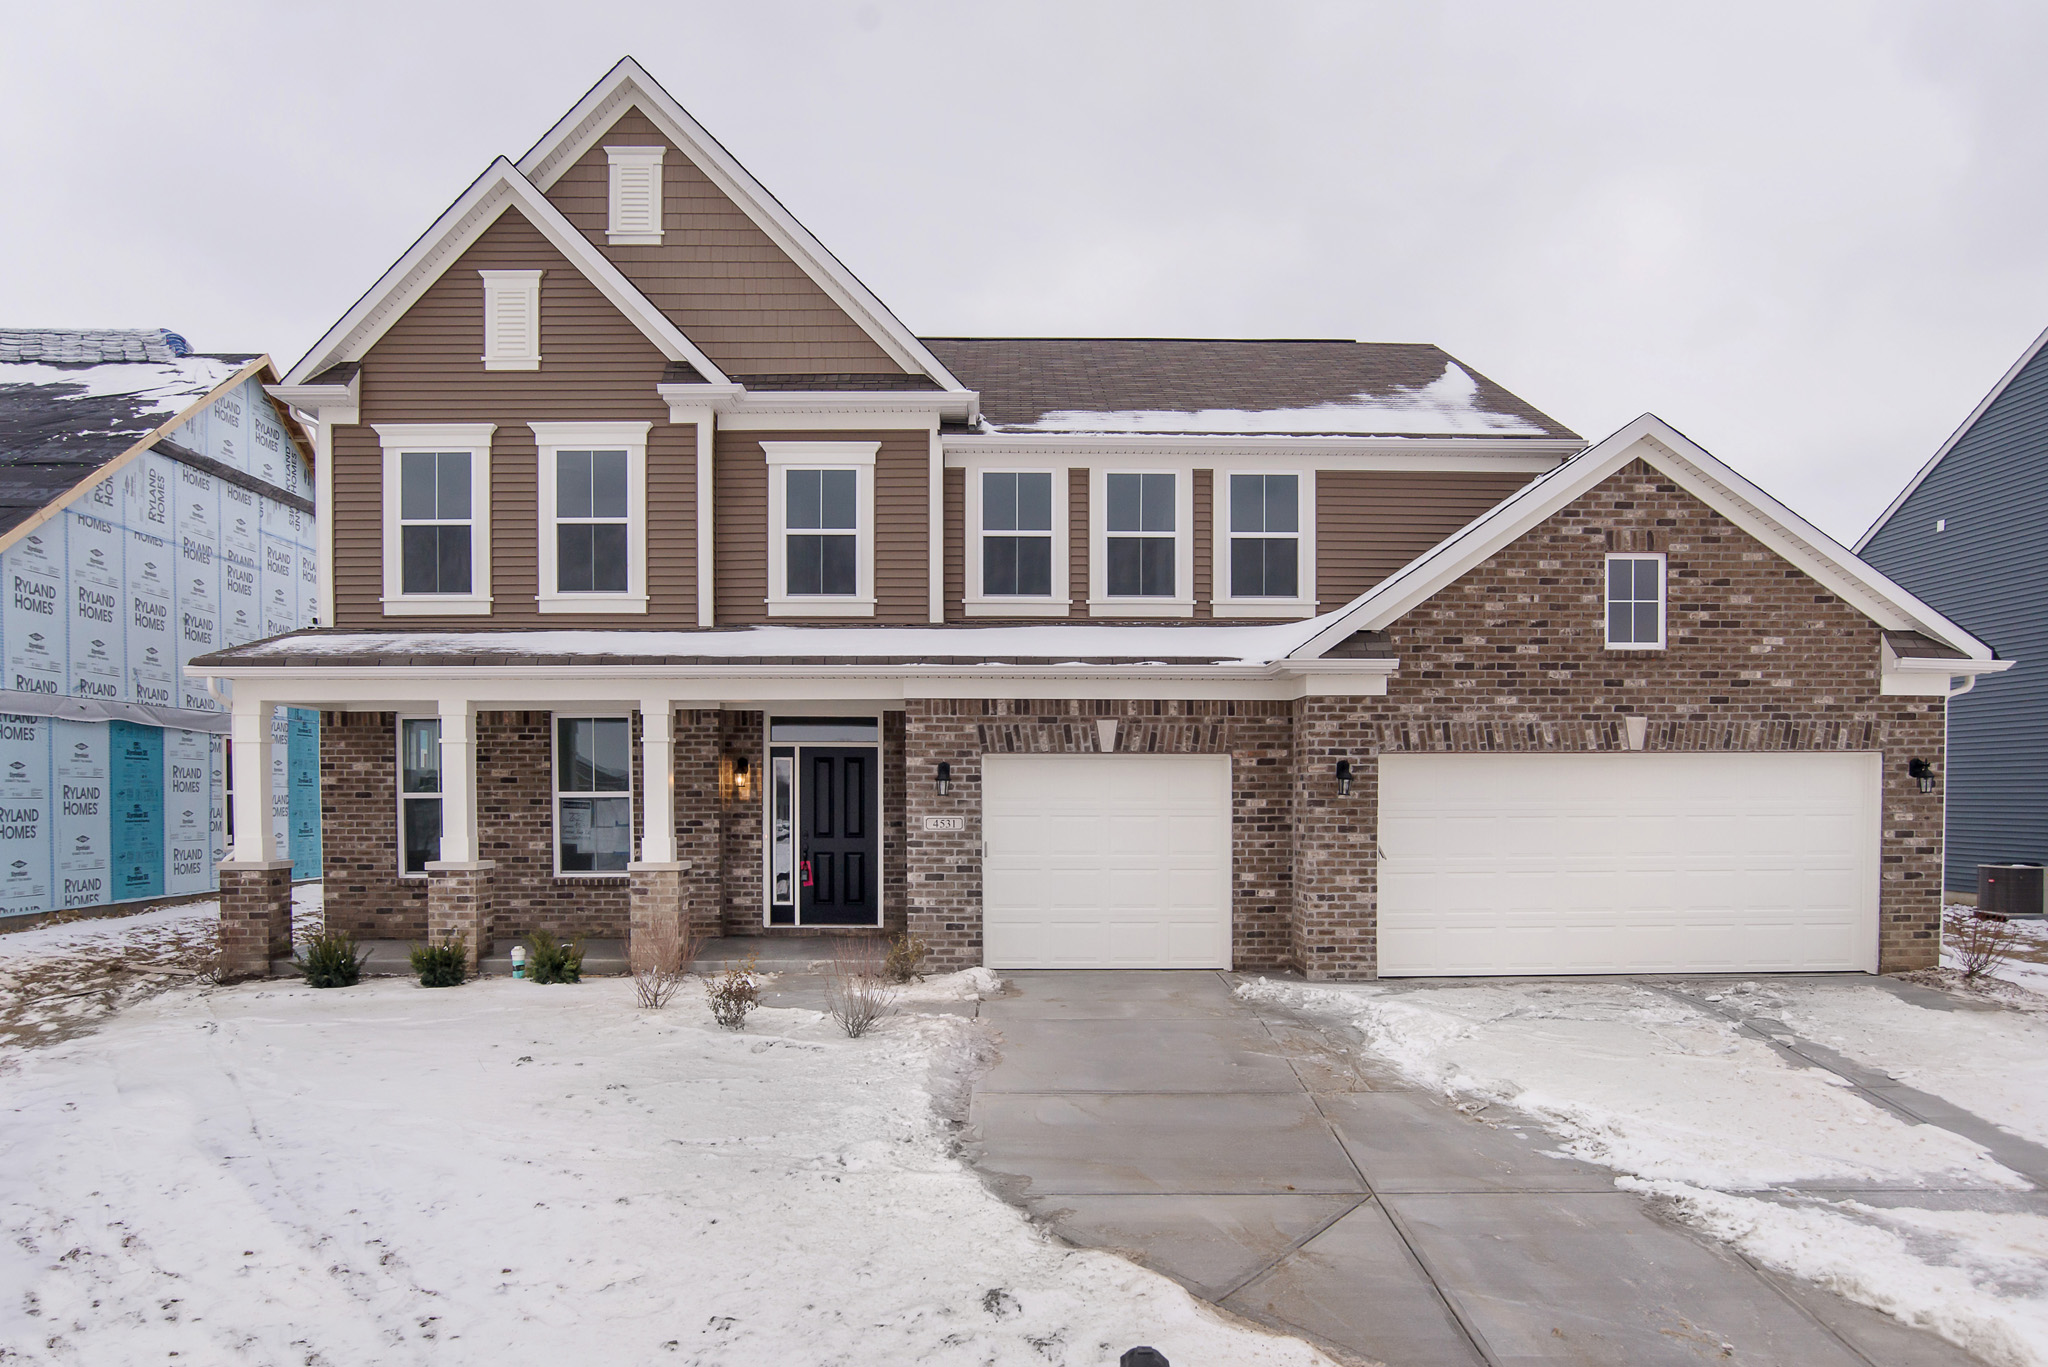 4531 Goose Rock Dr, Indianapolis, Indiana 46239